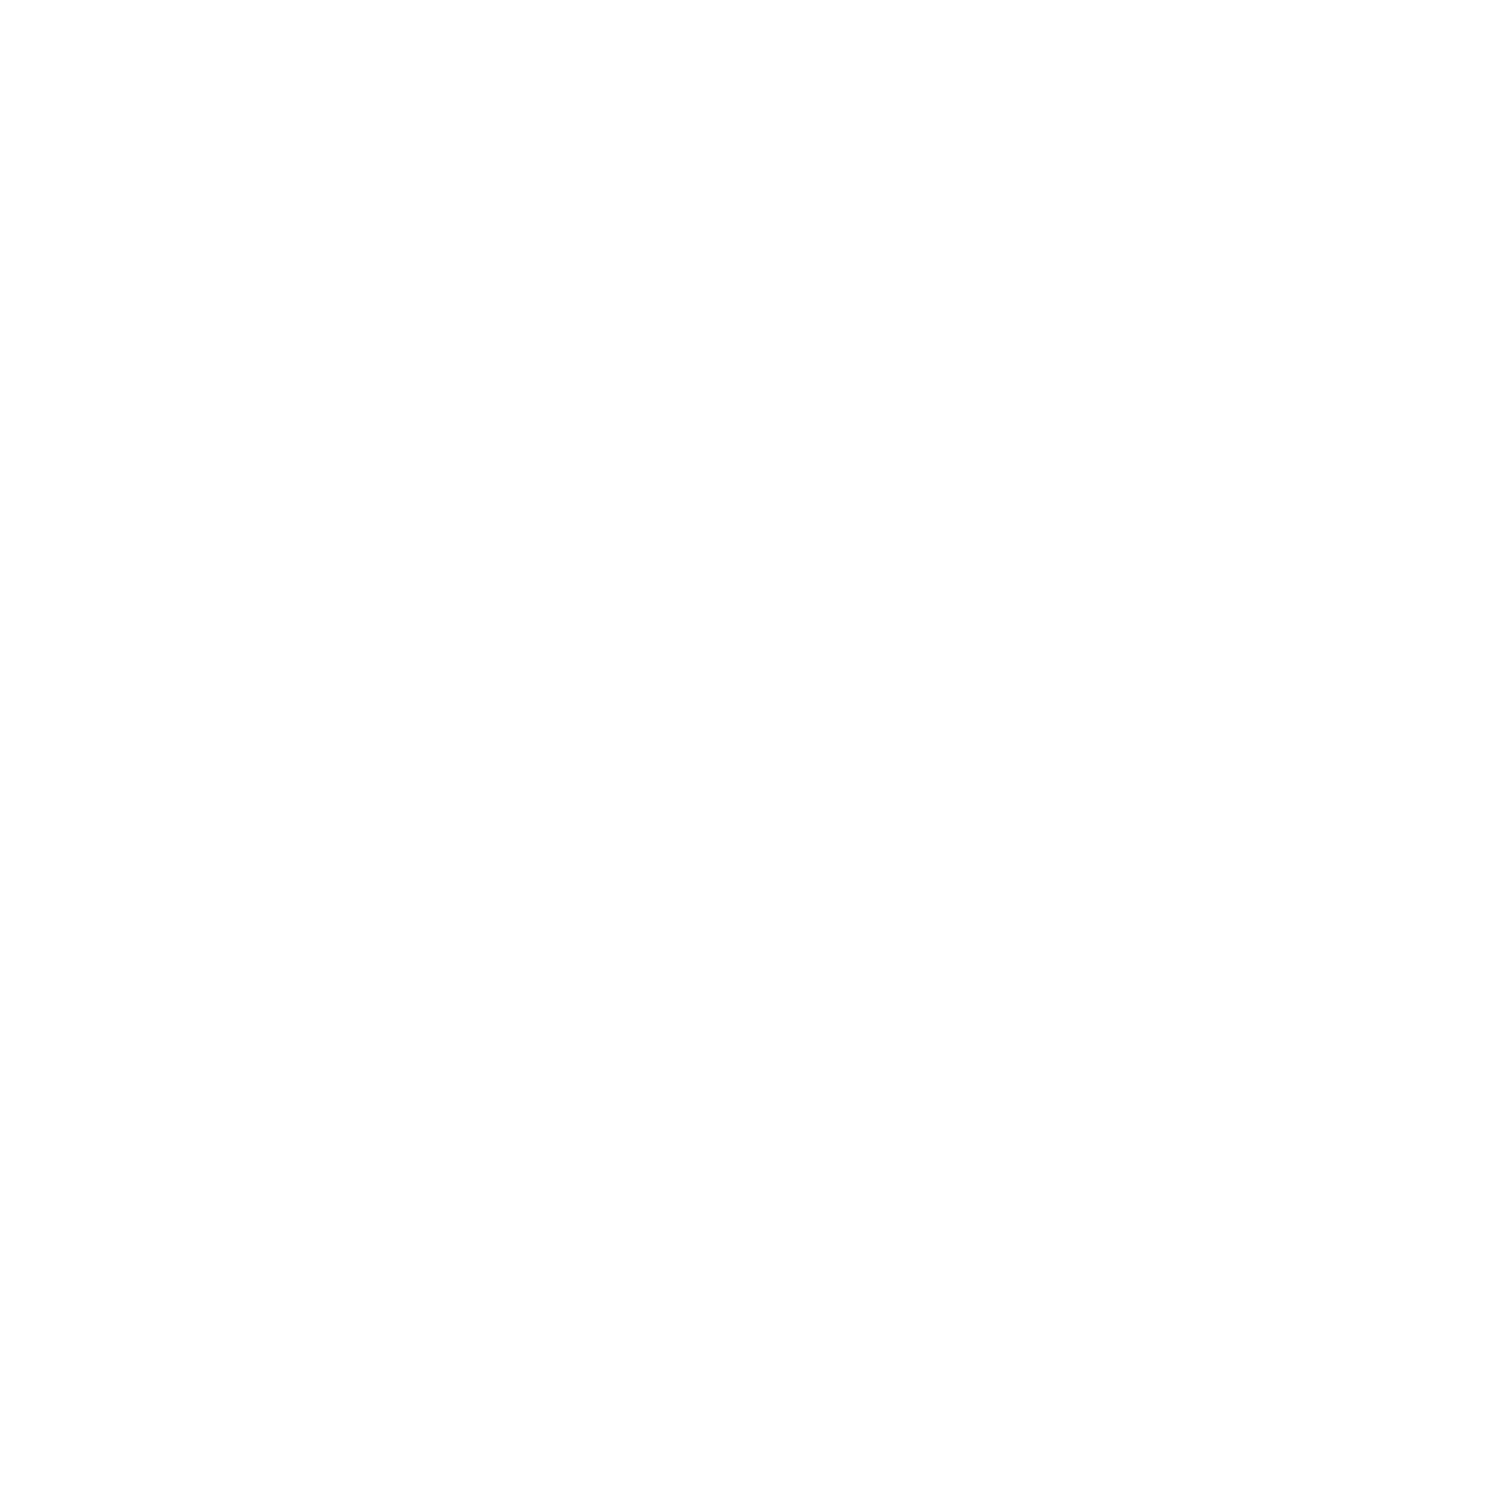 Chicago Gooners